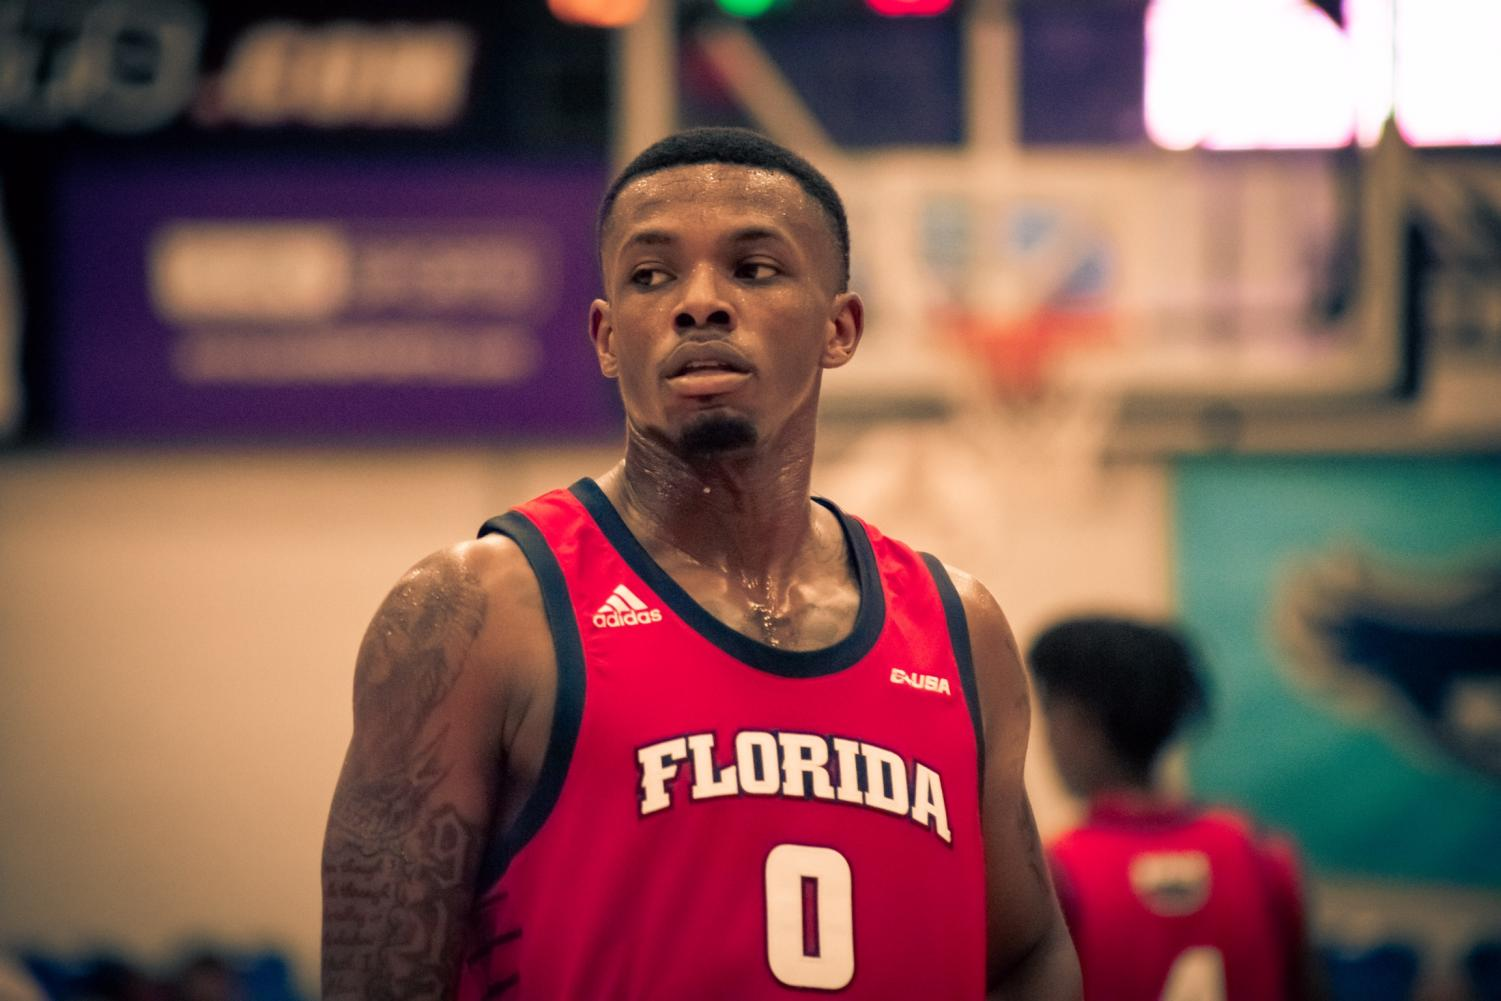 Graduate student Cornelius Taylor scored a team-high 20 points against the Flagler Saints. Photo by: Michael Hoyos.